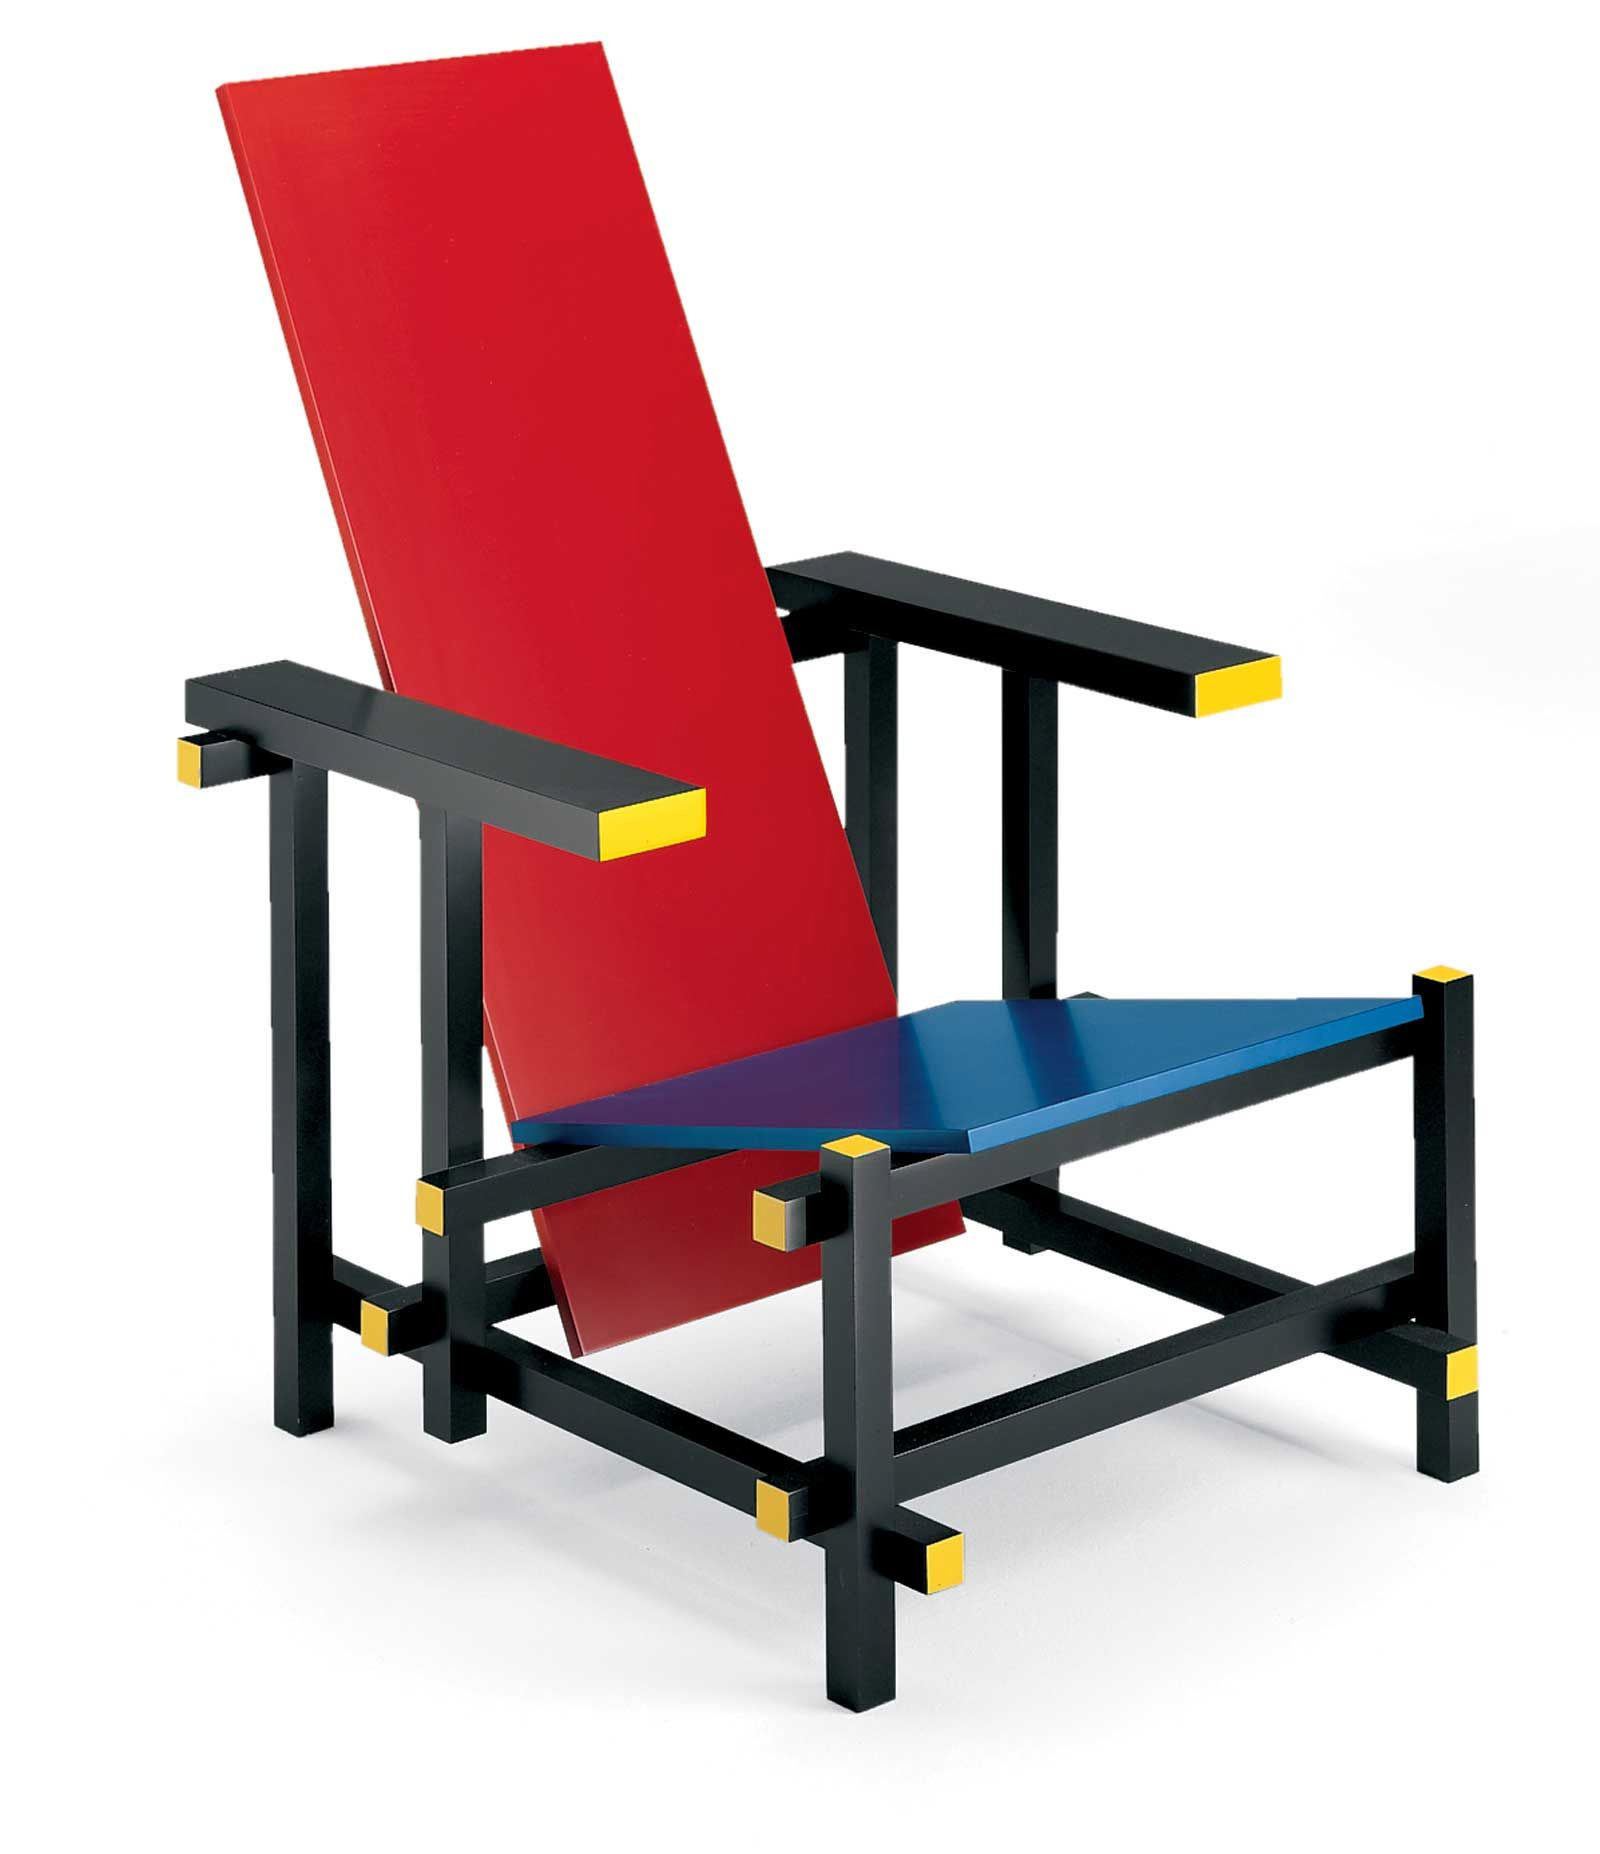 malik gallery collection gerrit thomas rietveld red and blue chair. Black Bedroom Furniture Sets. Home Design Ideas